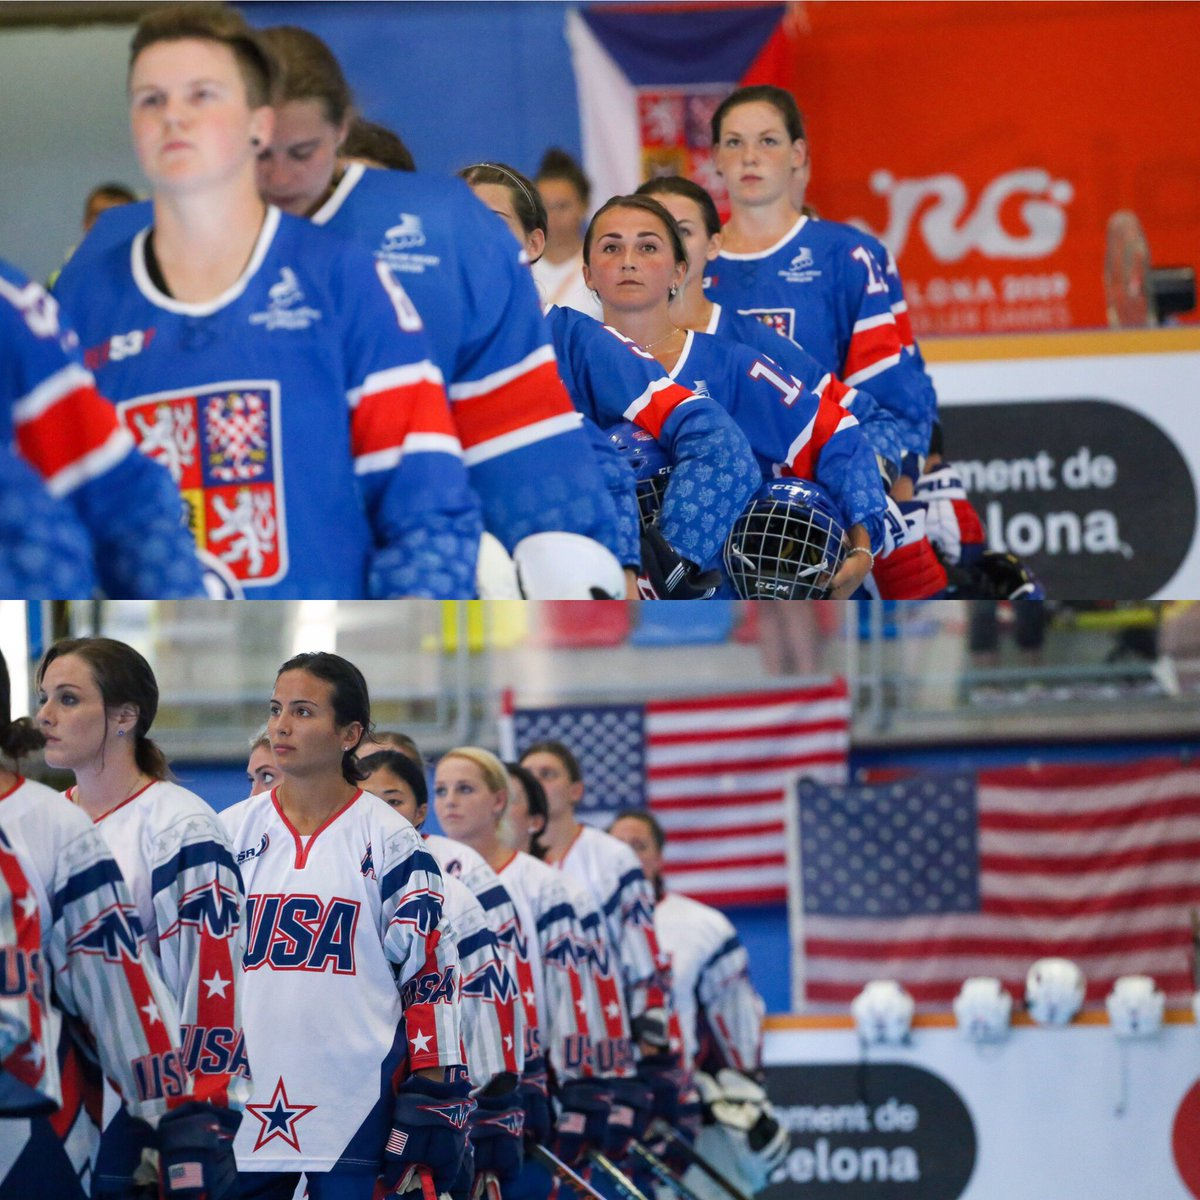 """🥅🏒#inlinehockey🏒🥅#WORLDROLLERGAMES   We have """"the names"""": USA and Czech Republic are in the SENIOR WOMEN Final! http://www.rollergames.tv #Worldskate #WRG2019 #skateaddicted #everybodyloveswheels @TheWorldGames @wrgbarcelona"""